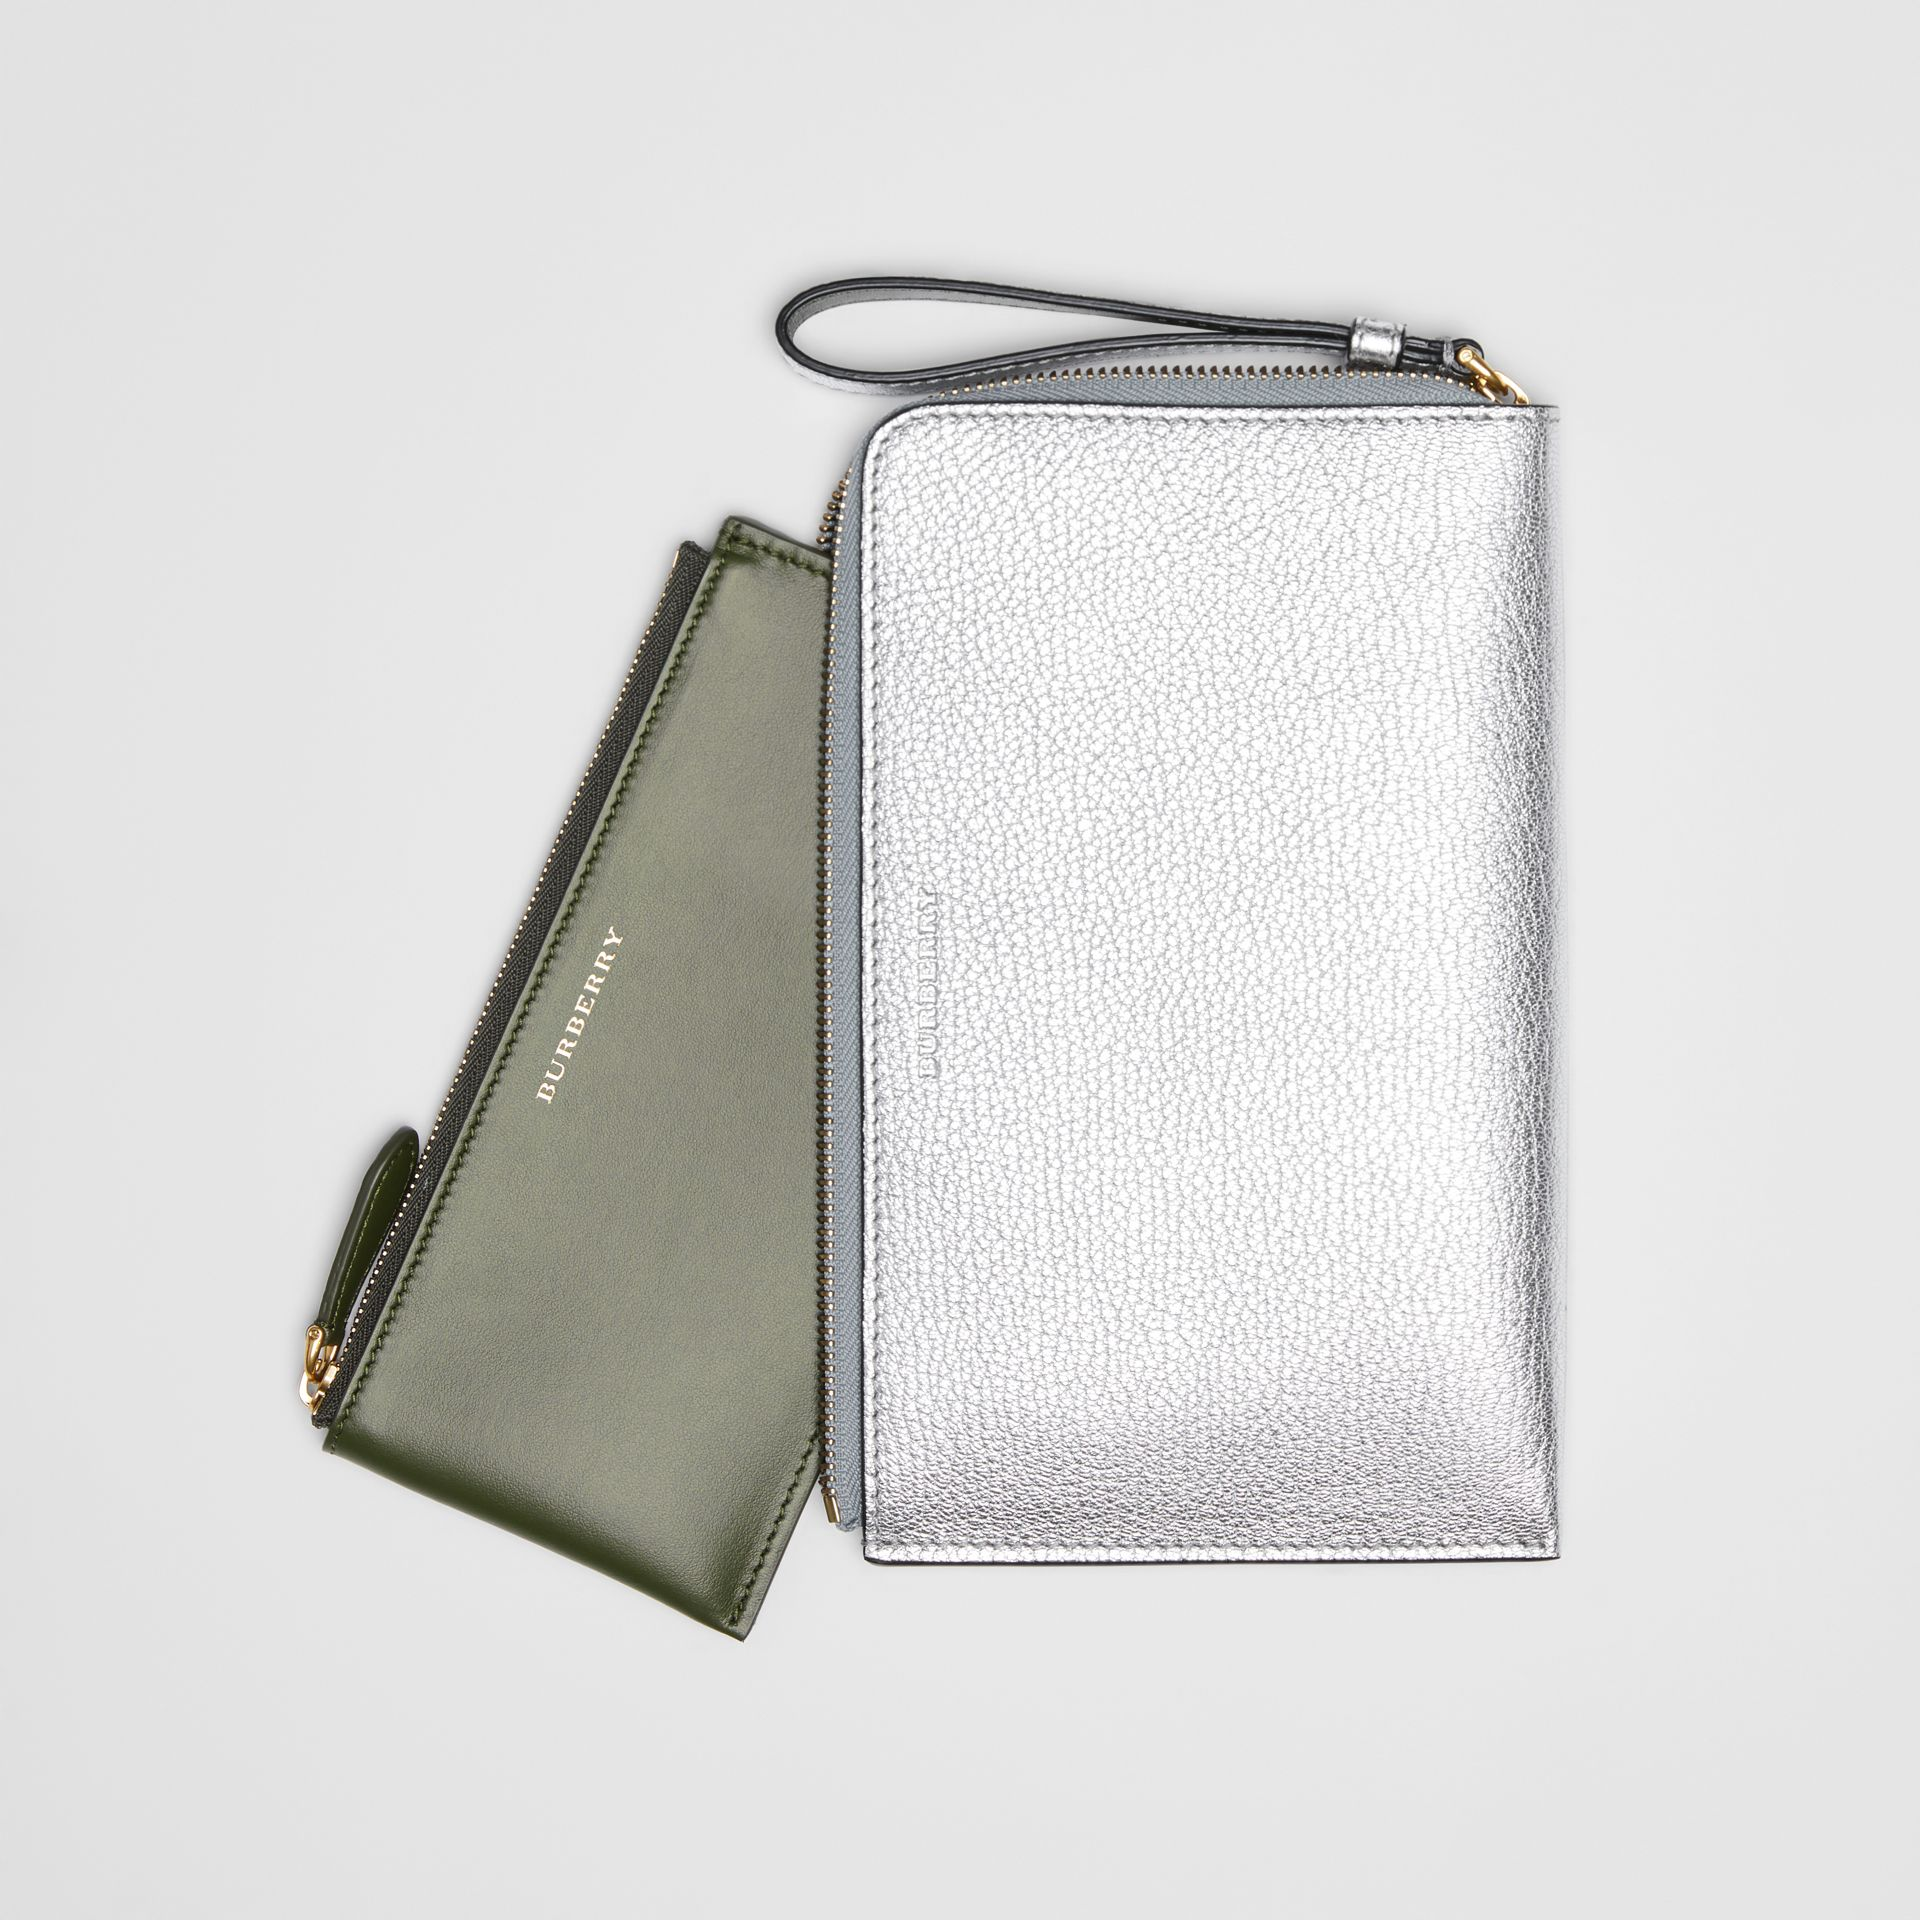 Two-tone Metallic Leather Travel Wallet in Silver - Women | Burberry - gallery image 6